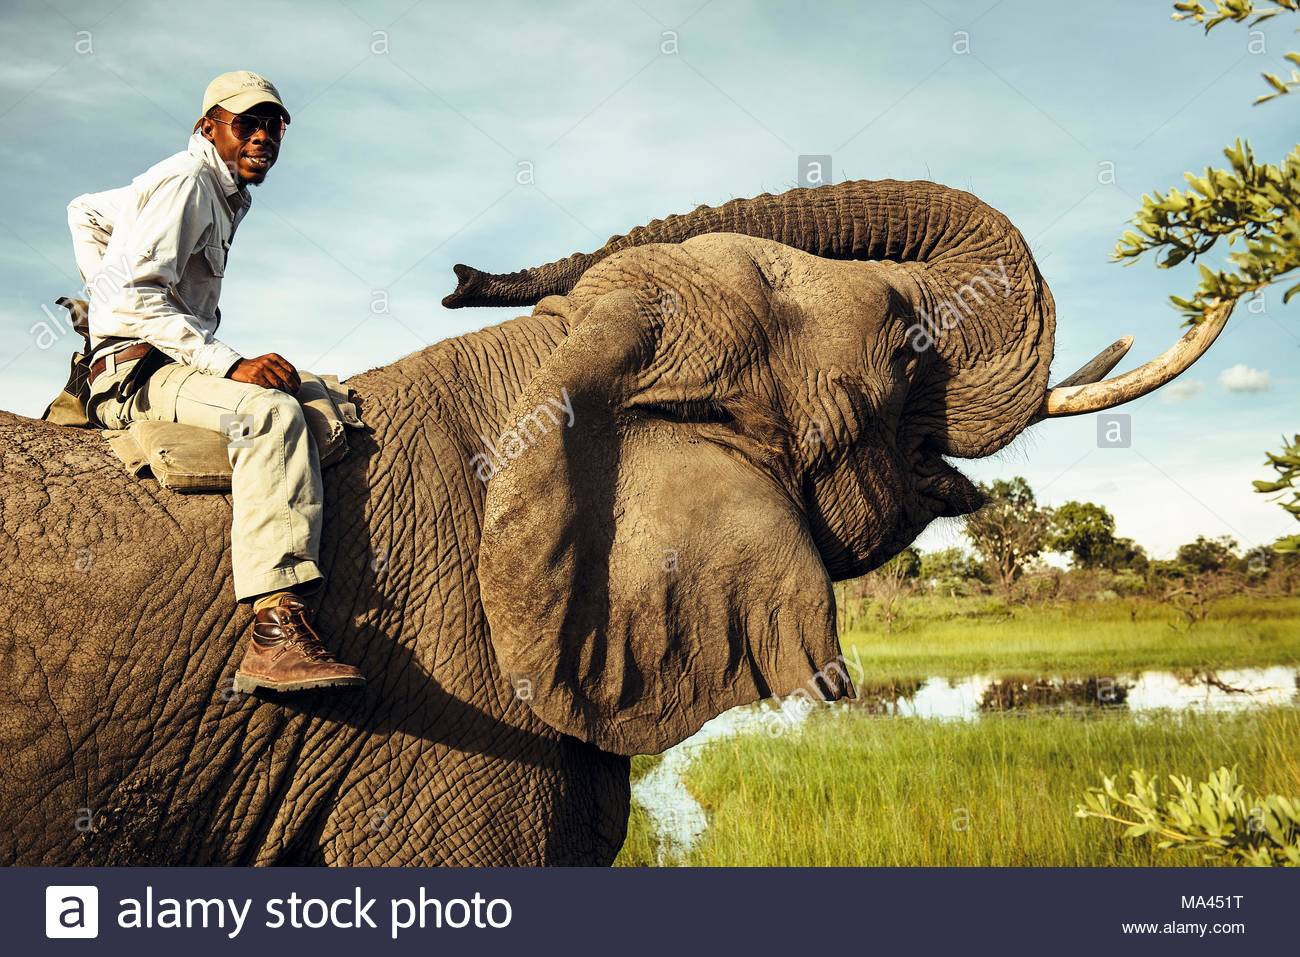 An African man on an elephant in the 'Abu Camp' elephant camp in the Okavango Delta in Botswana, Africa - Stock Image